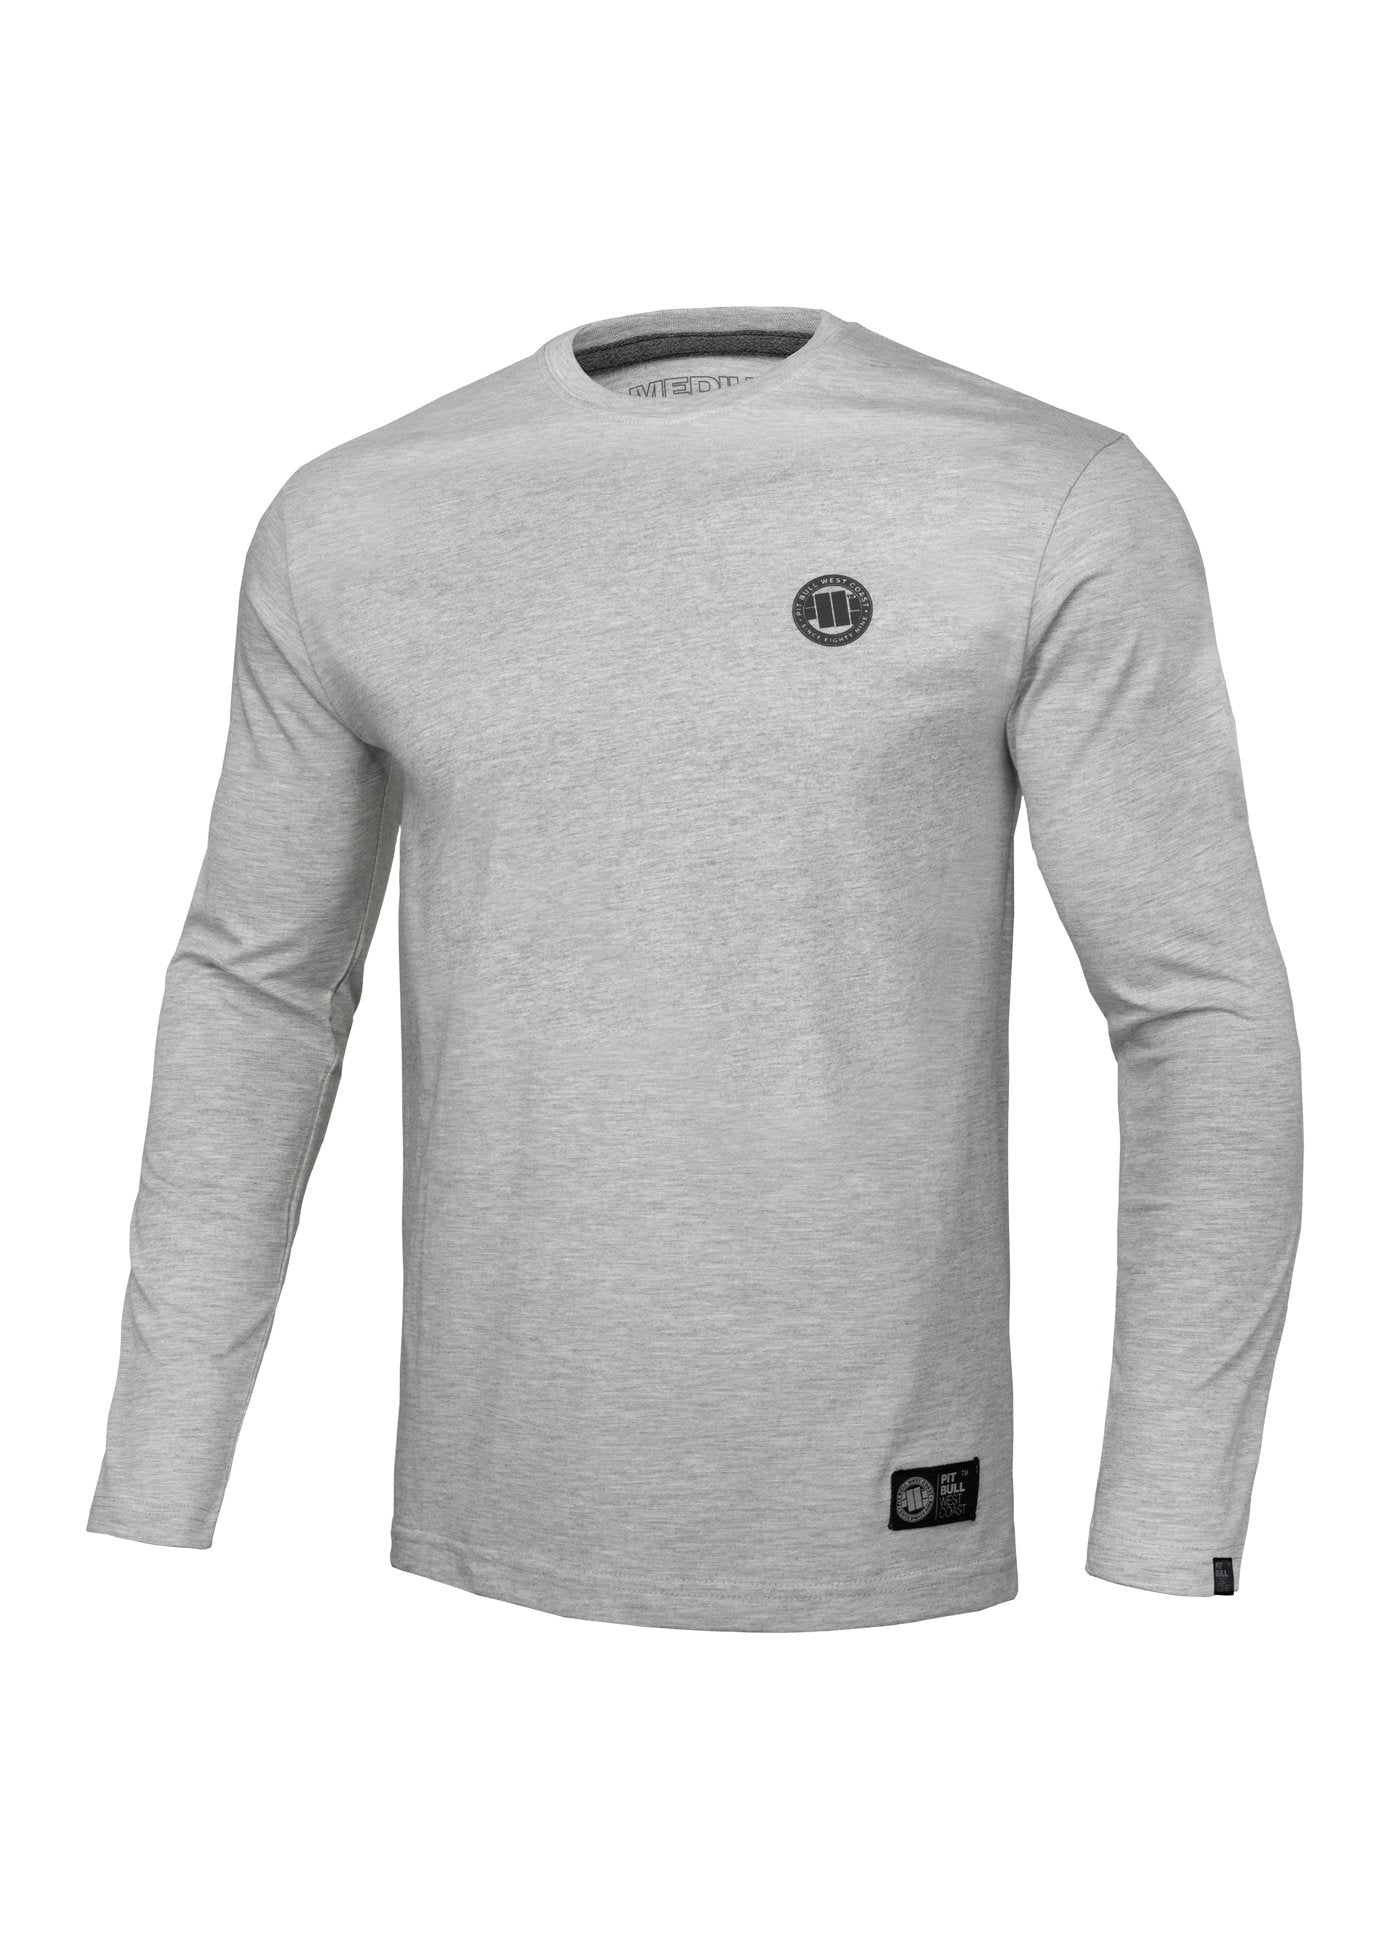 Longsleeve SMALL LOGO Grey - Pitbull West Coast U.S.A.